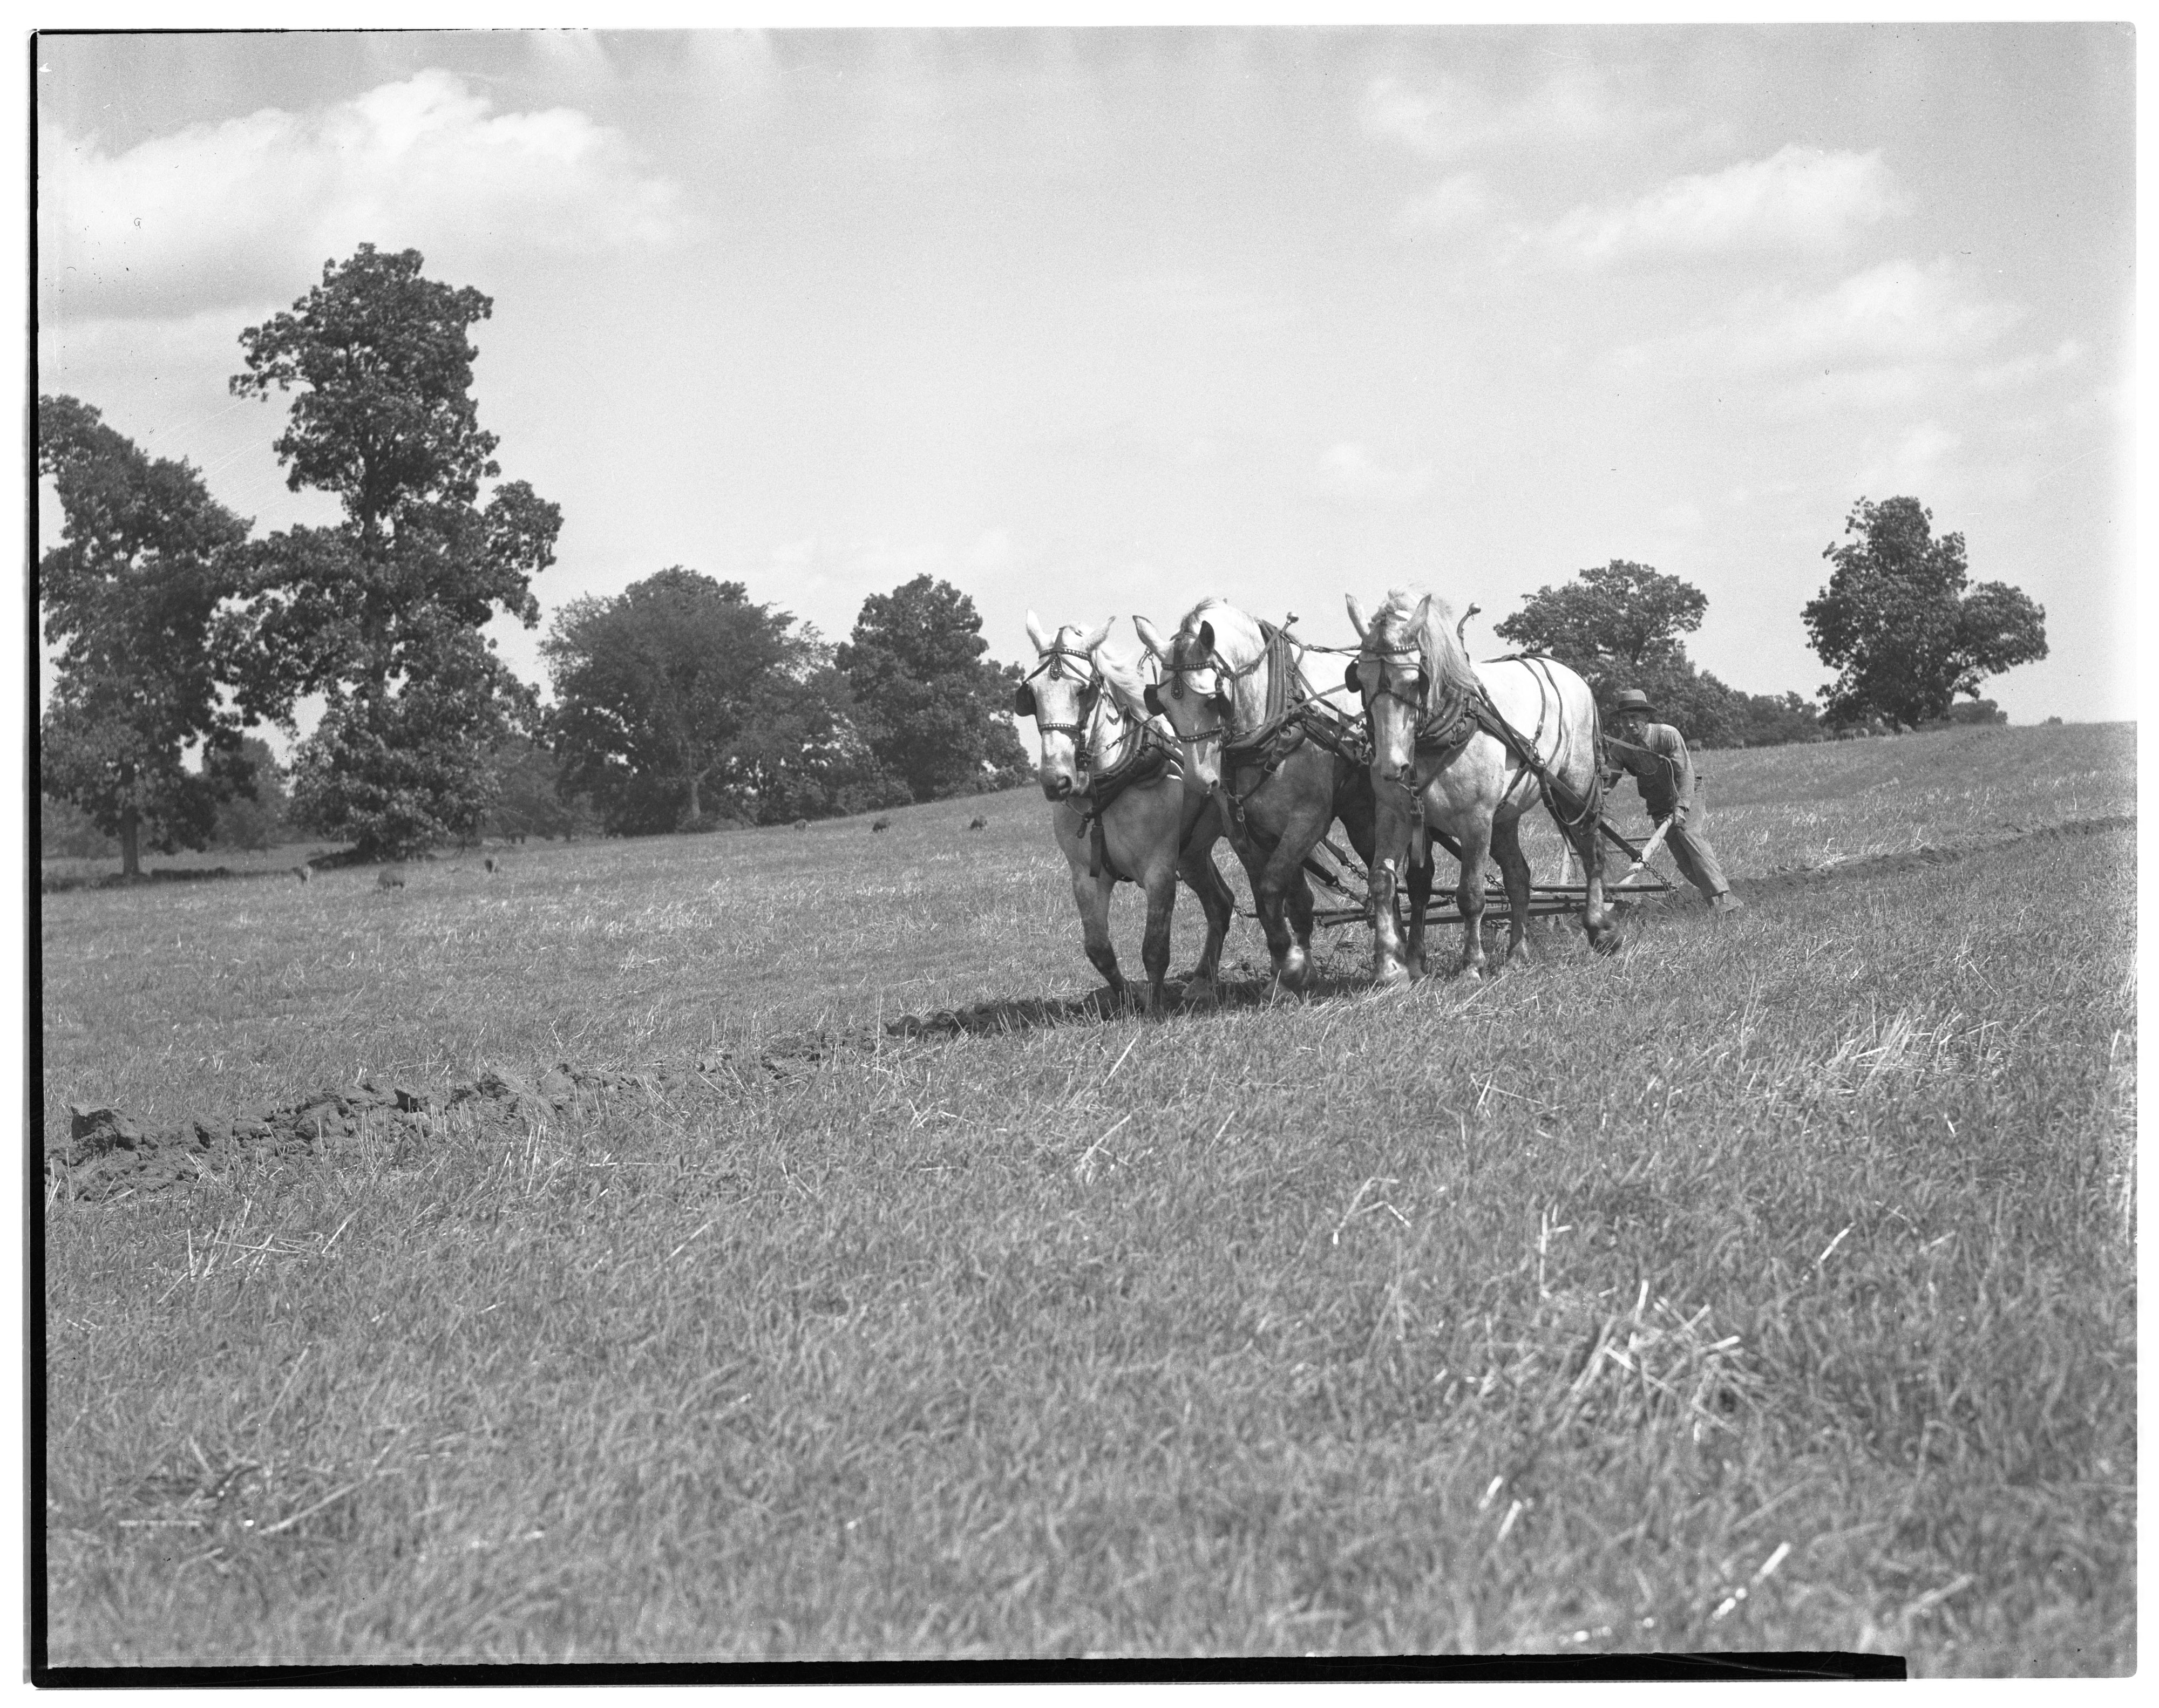 Plowing with a Three-Horse Team image